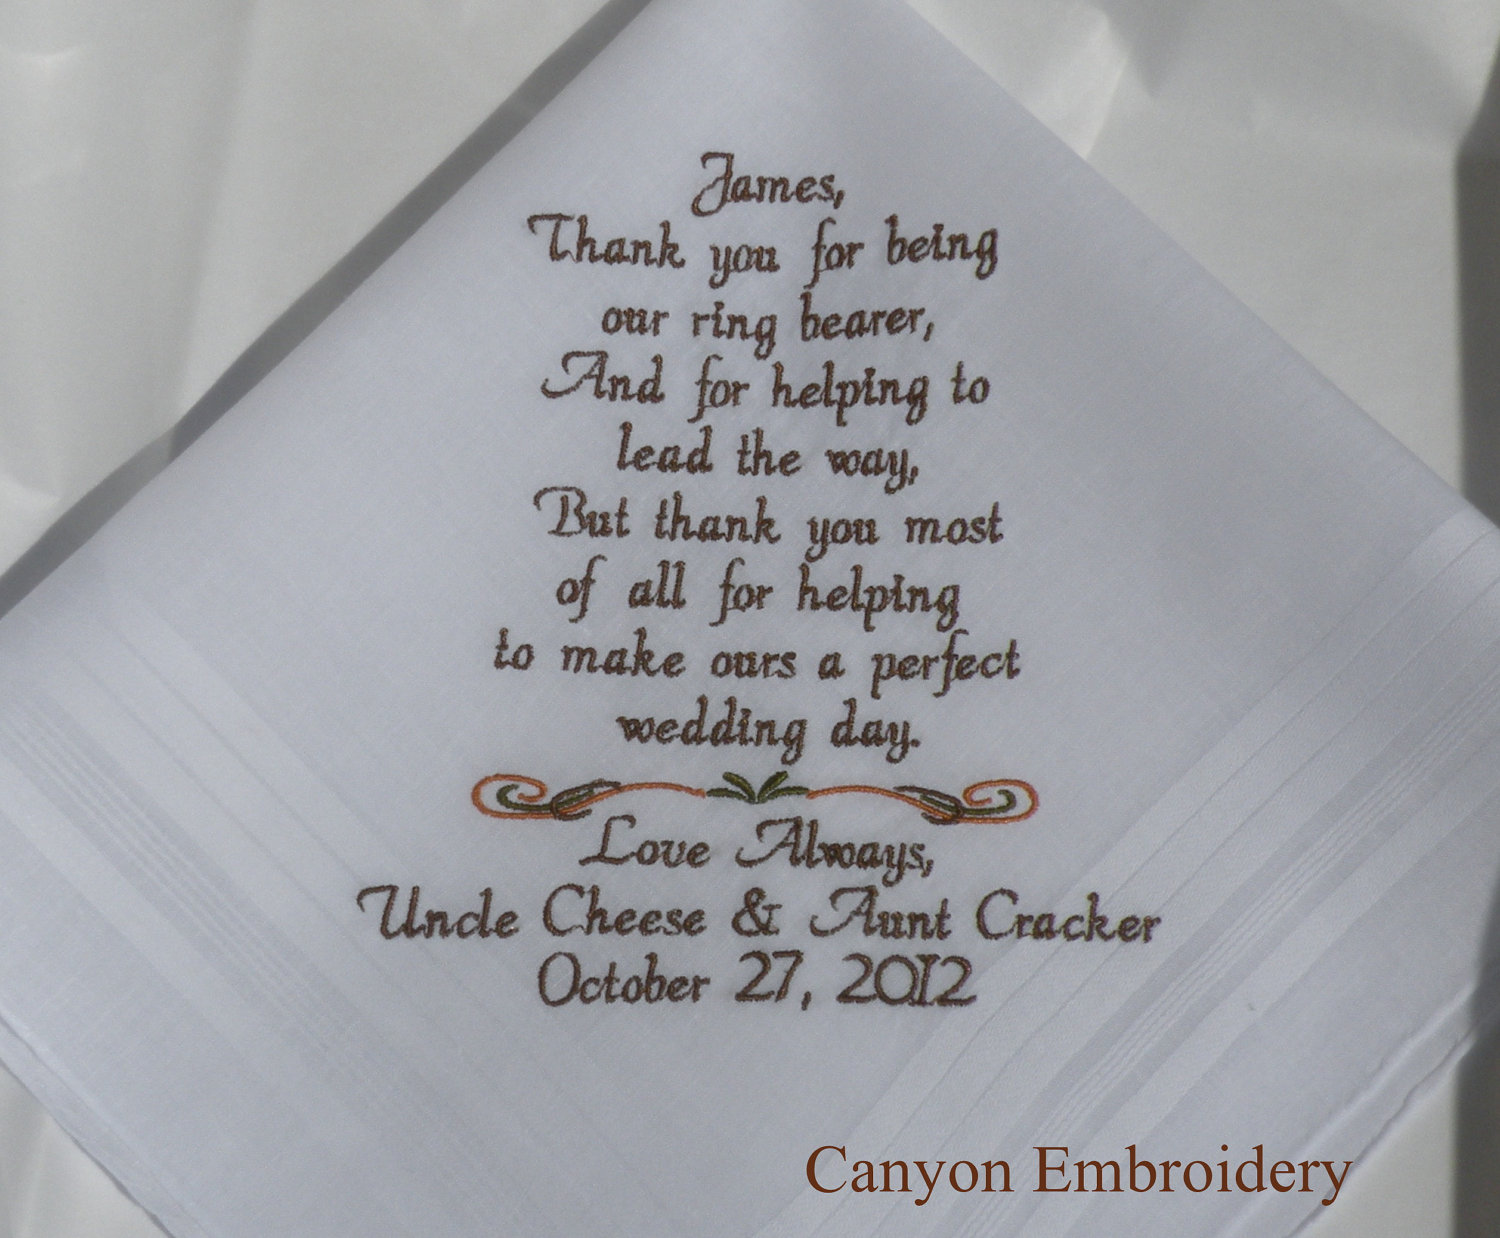 Funny Thank You Poem For Wedding Gifts - Wedding Invitation Sample